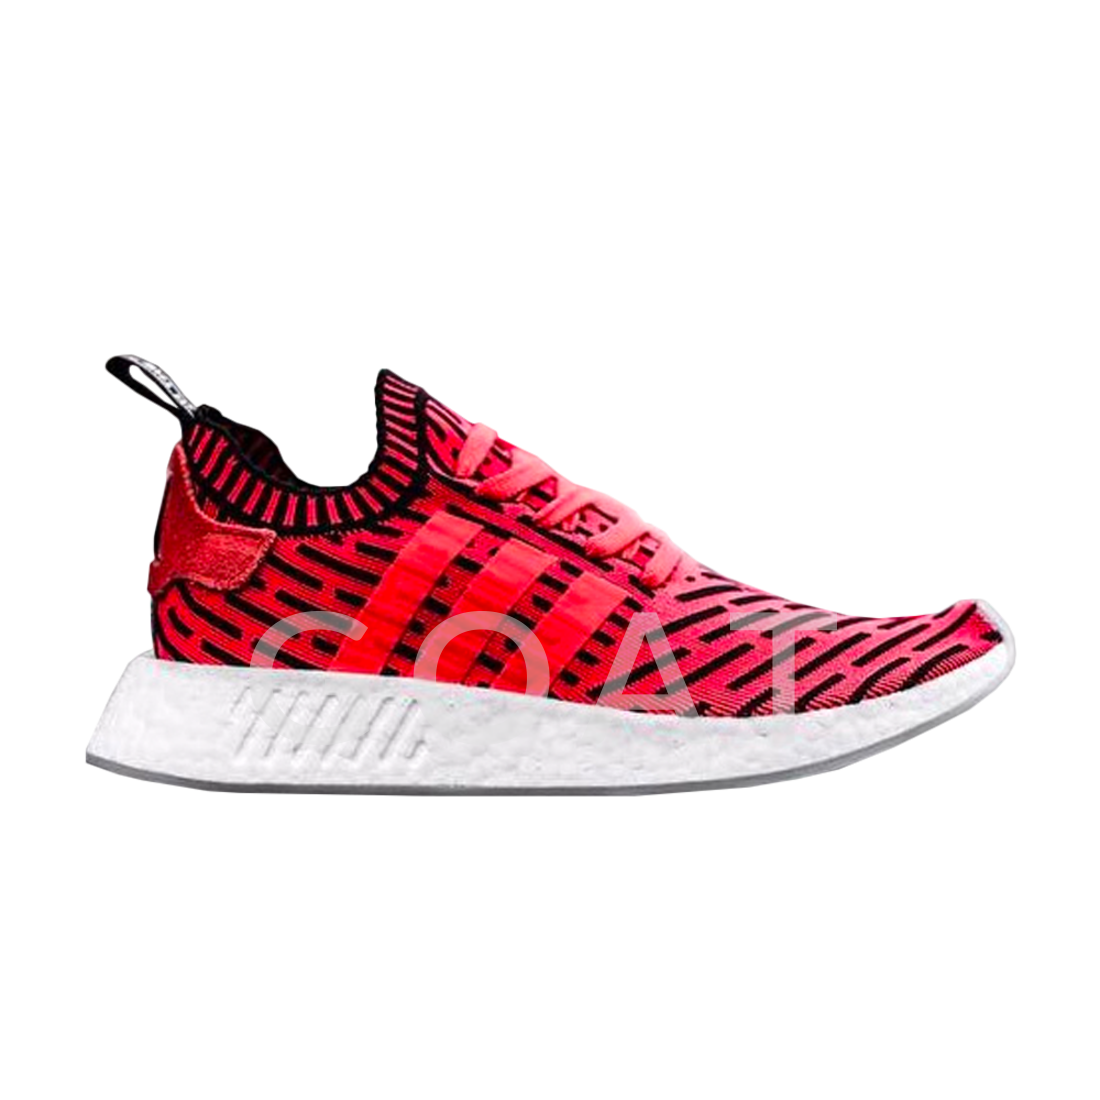 69a763132 NMD R2 PK  Core Red  - Adidas - BB2910 - core red core red footwear ...